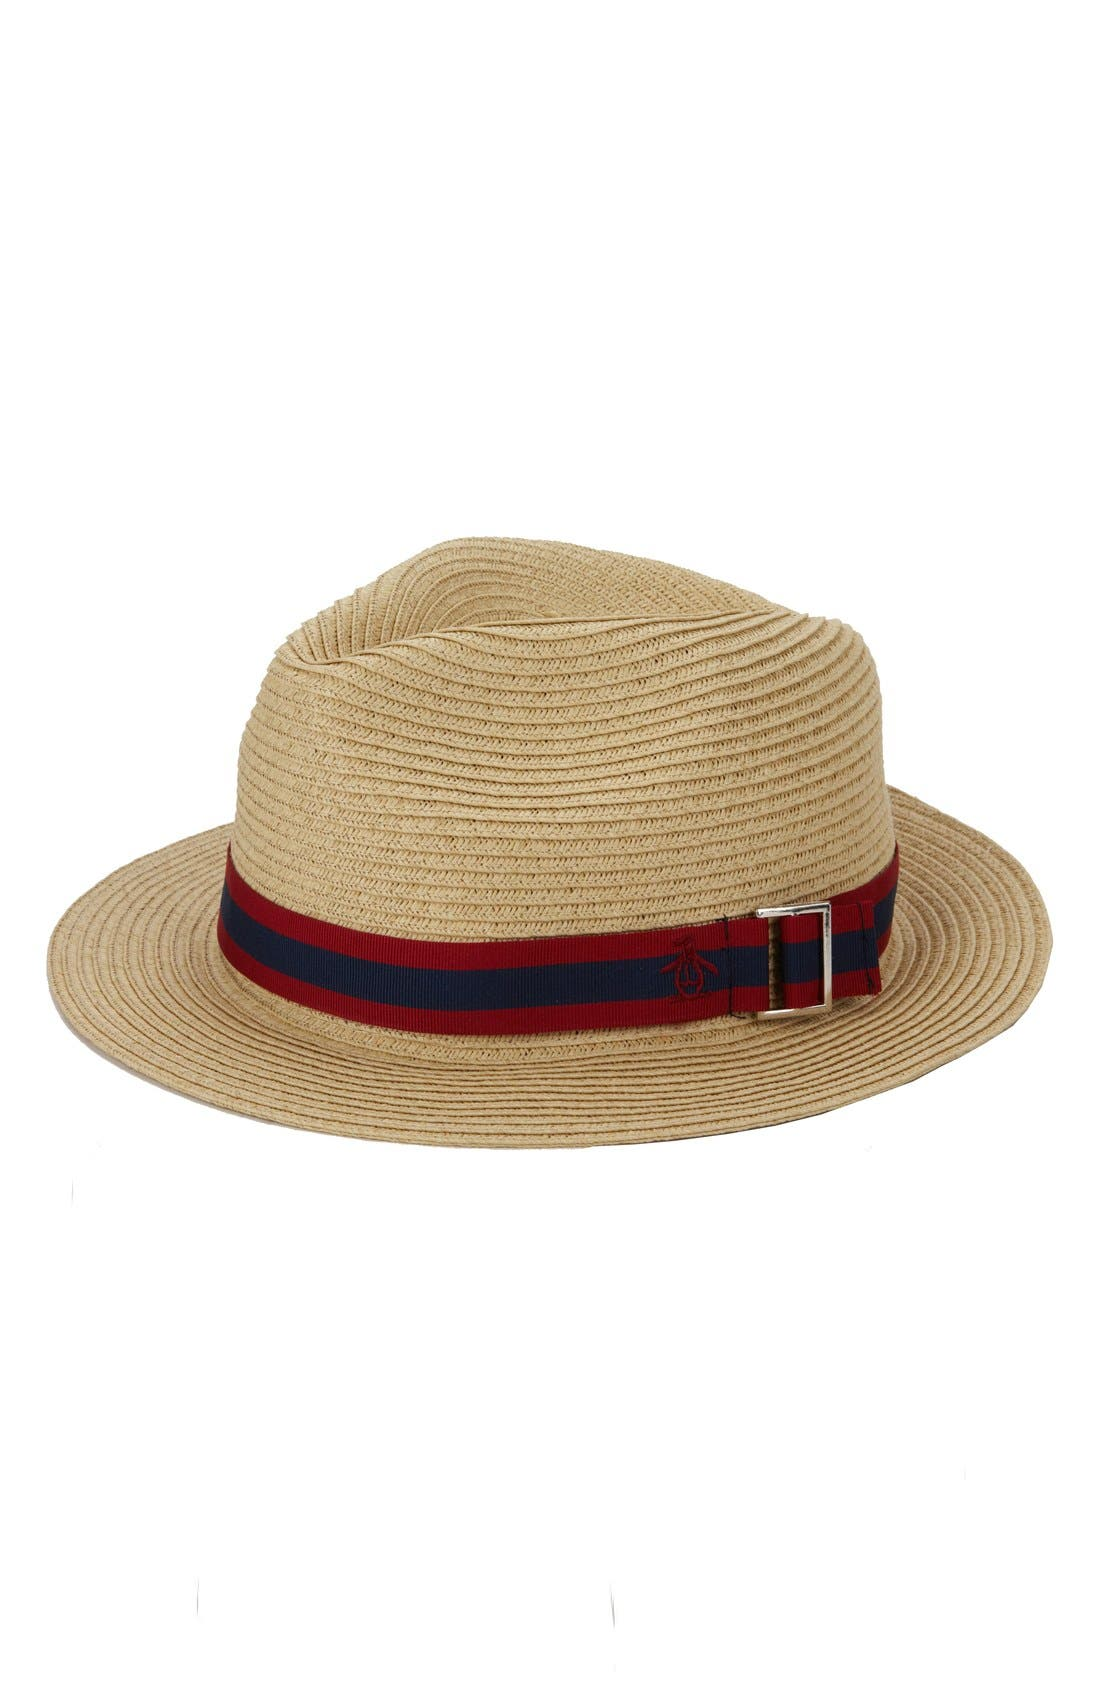 'Cuda' Straw Fedora,                             Main thumbnail 1, color,                             105